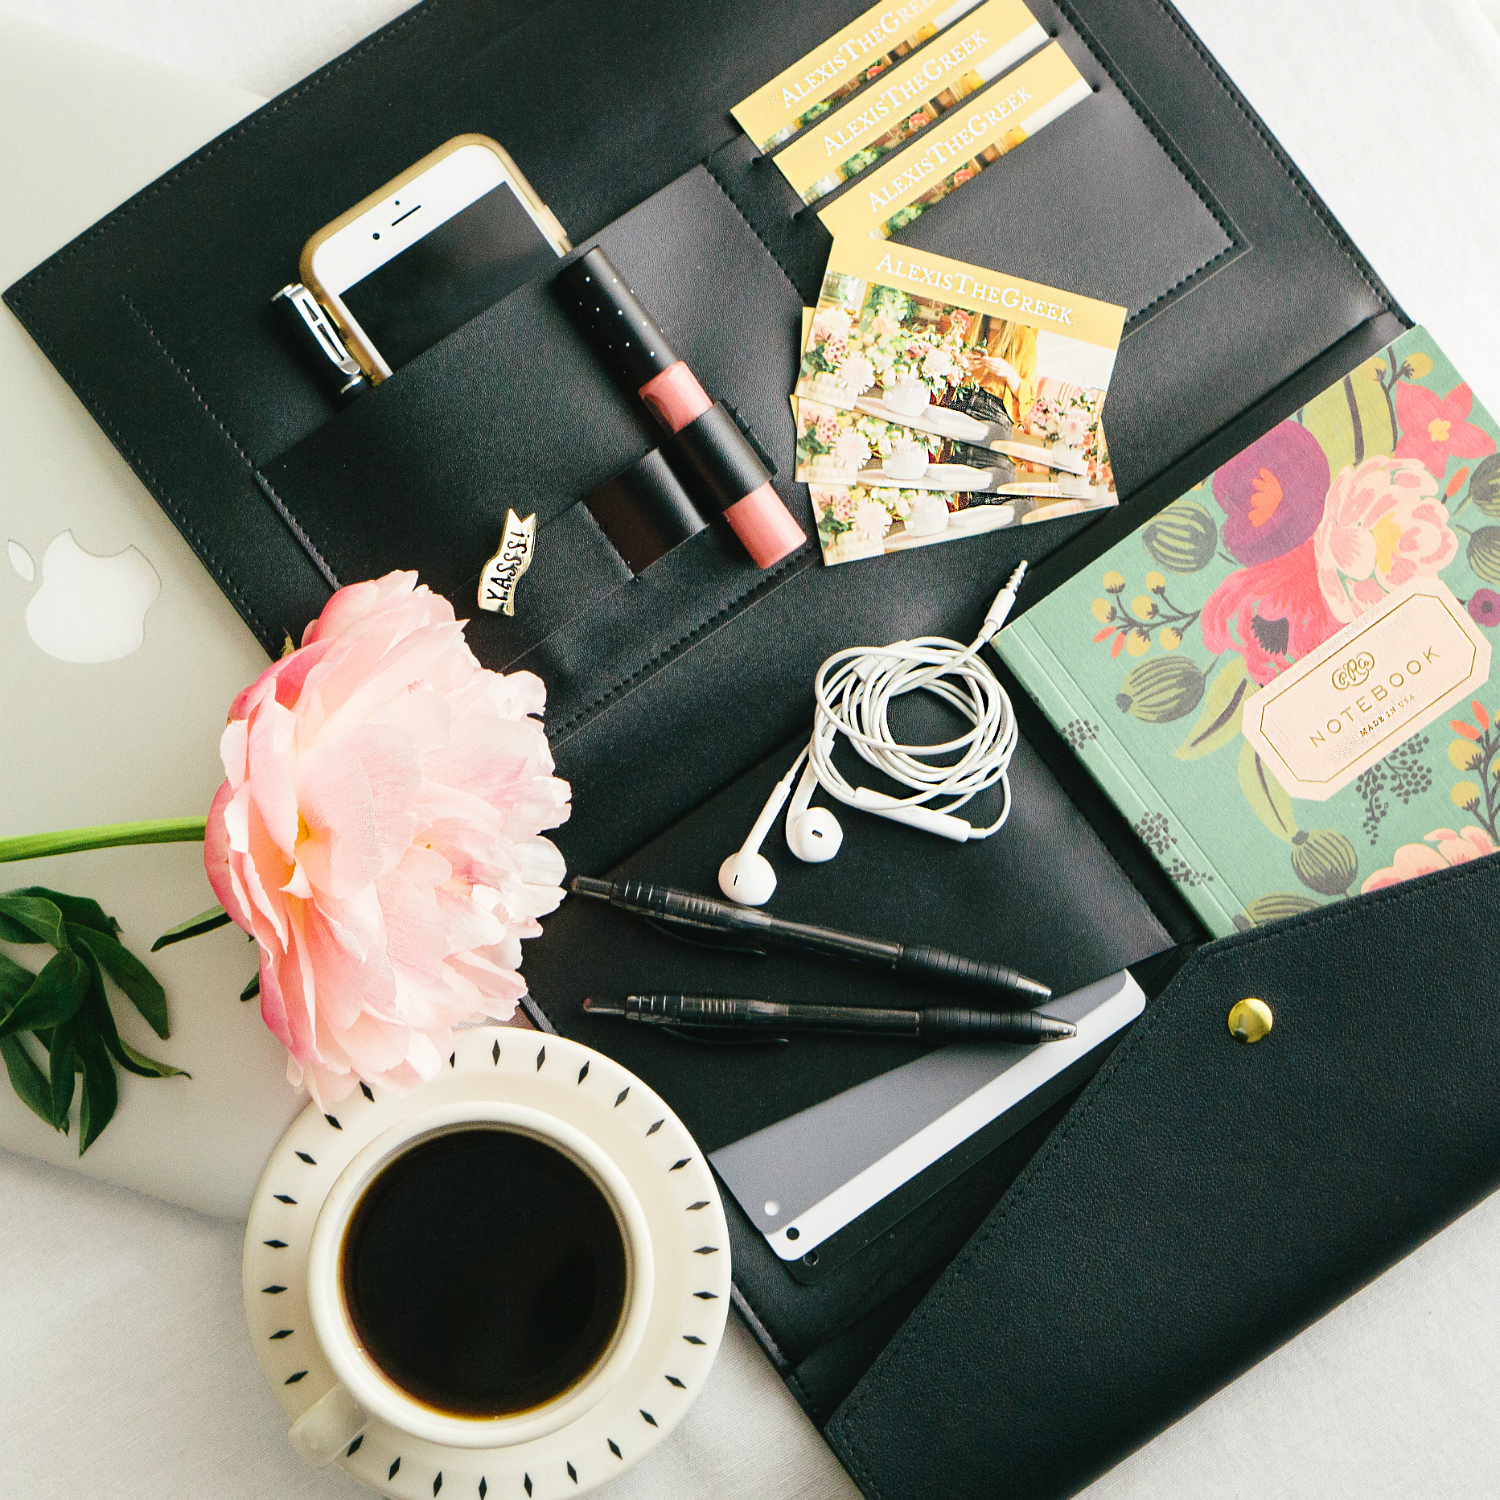 What's In YOUR Camera Bag? 7 Free or Cheap Tools Photographer Tools for Your Next Photo Shoot | Alexis The Greek blog